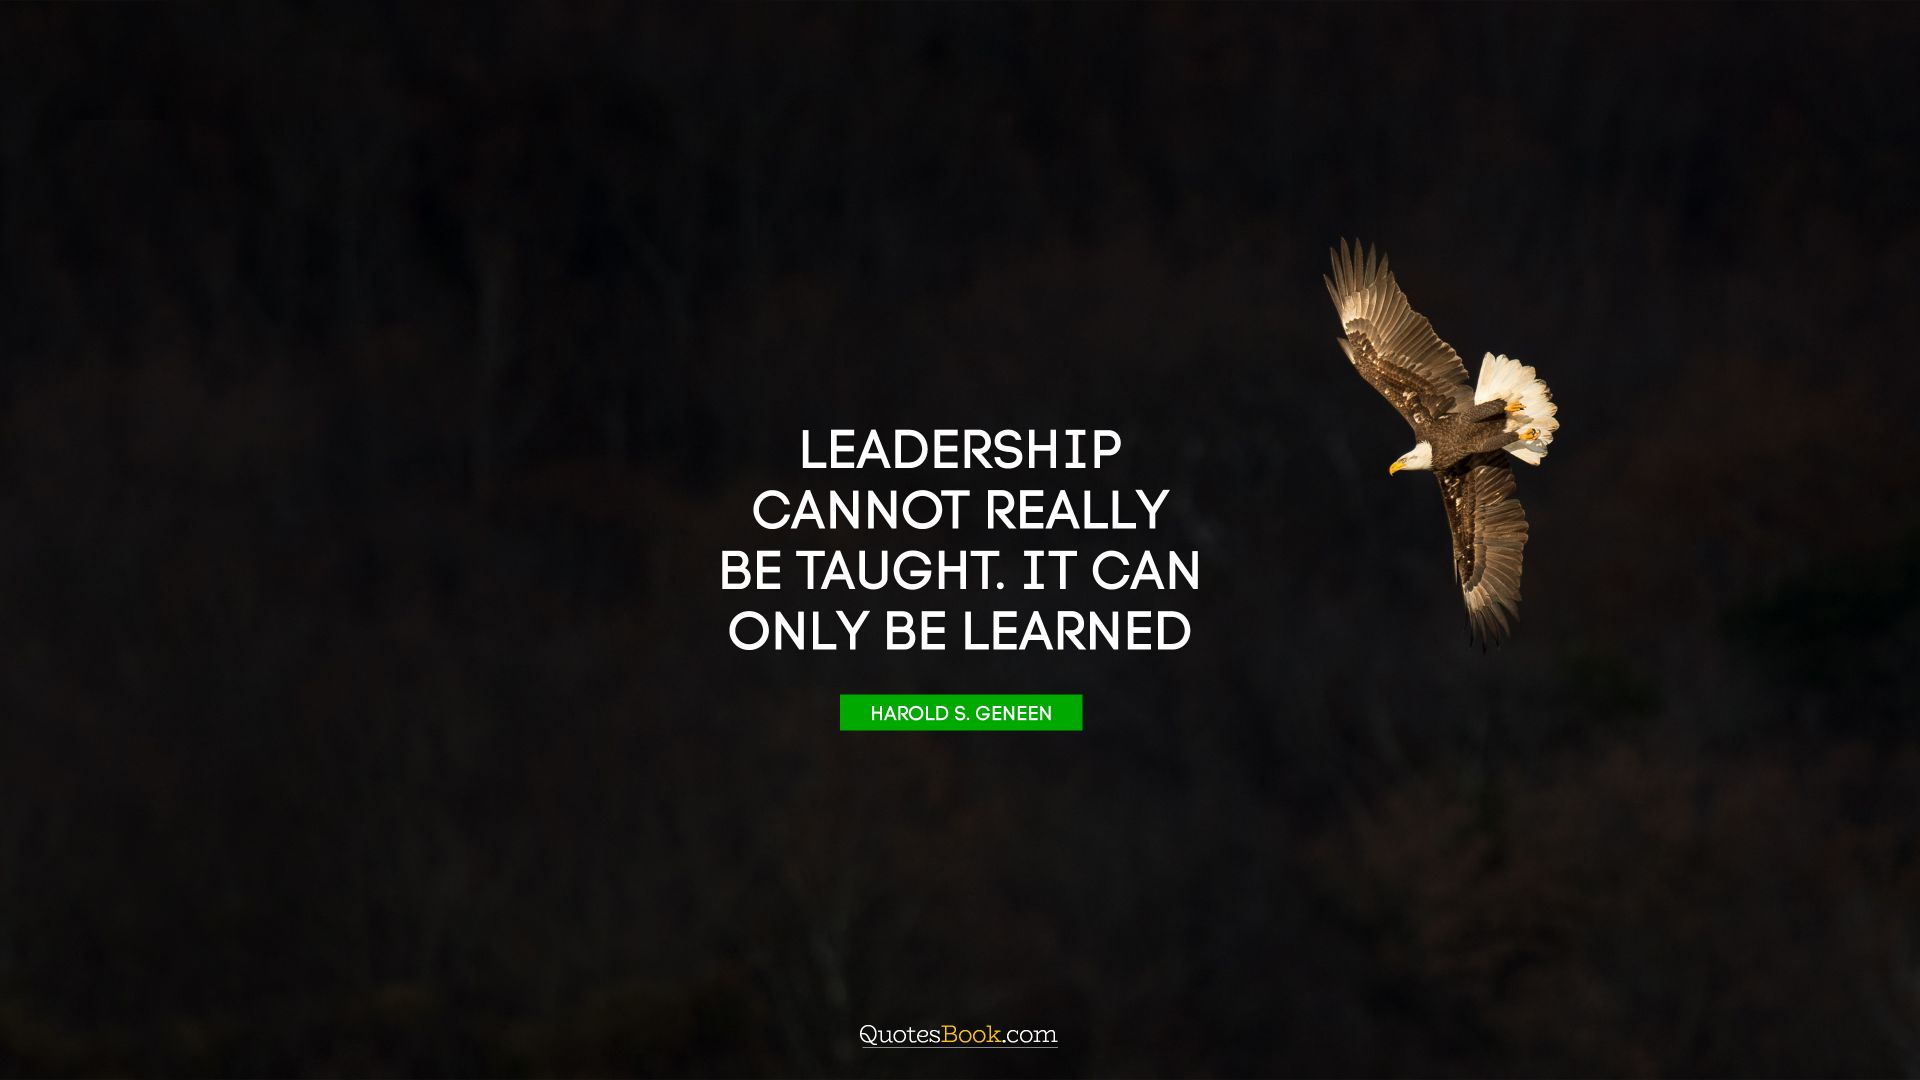 Leadership cannot really be taught. It can only be learned. - Quote by Harold S. Geneen